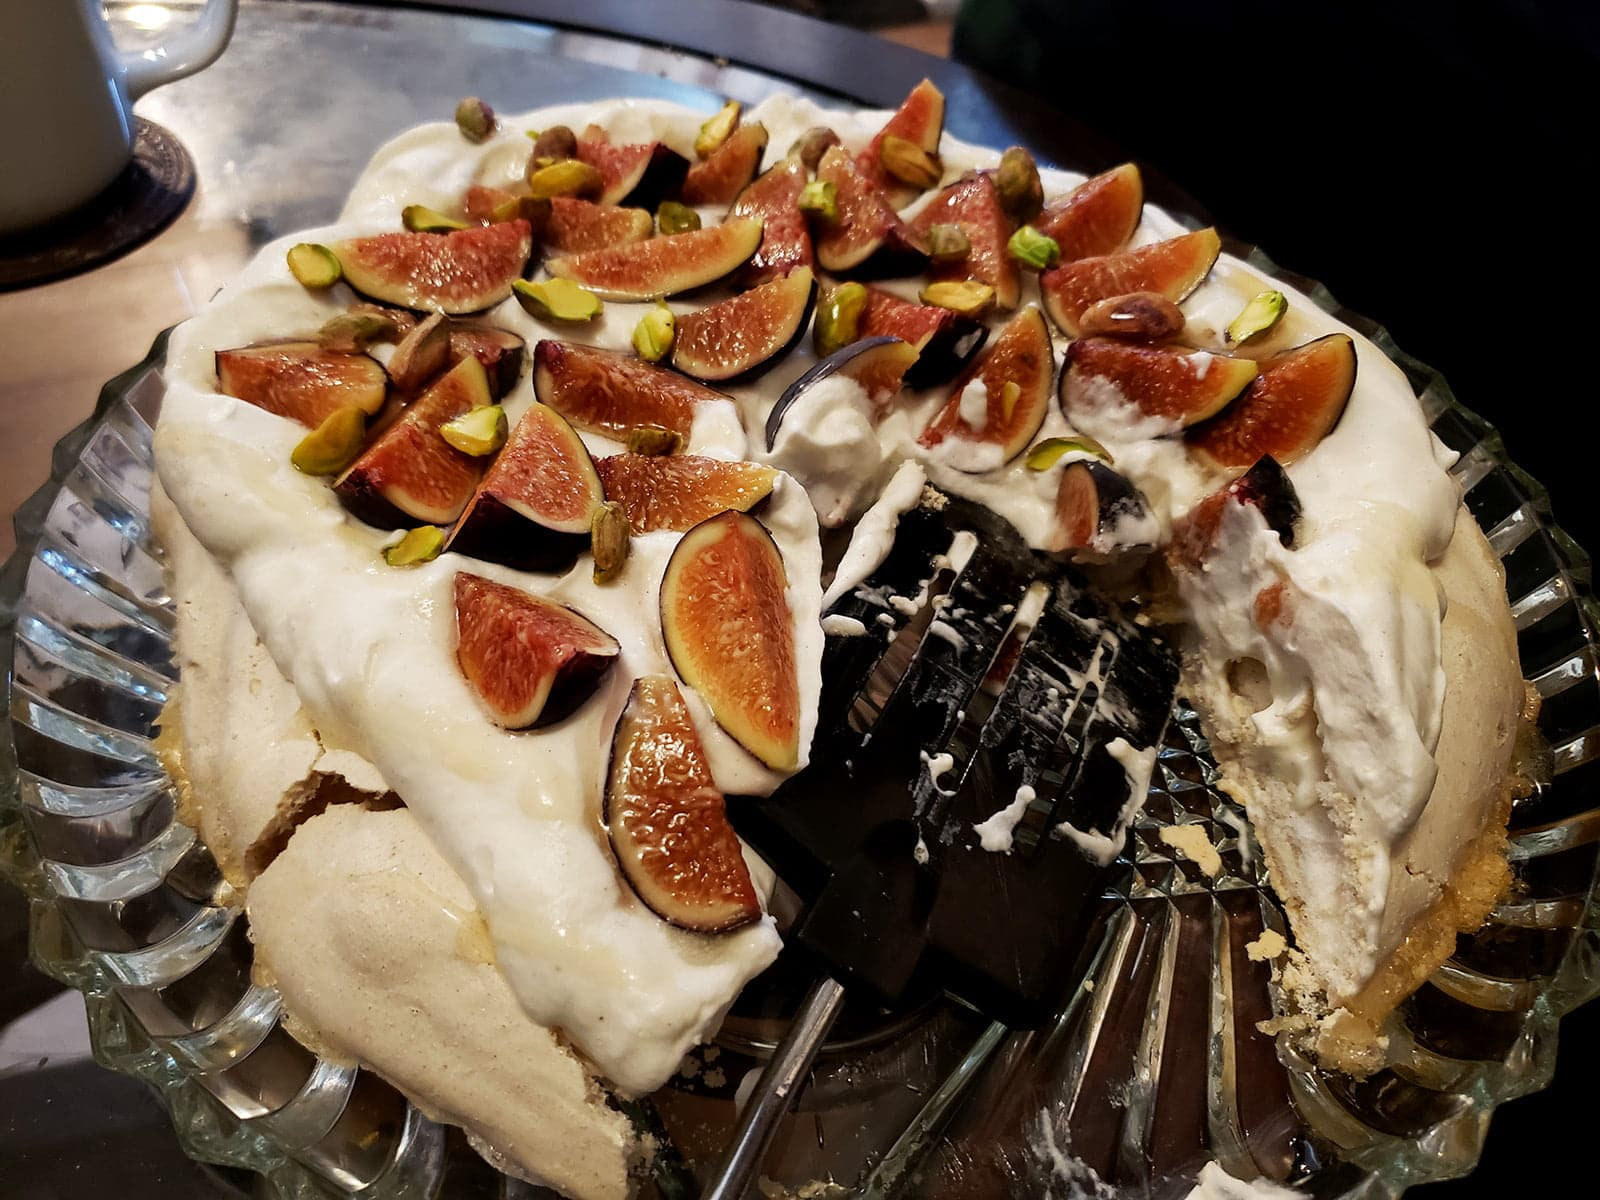 An ivory coloured Pavlova meringue round, piled with whipped cream, sliced figs, and pistachios. It's half eaten, on a glass serving plate.  A Cardamom fig pavlova.